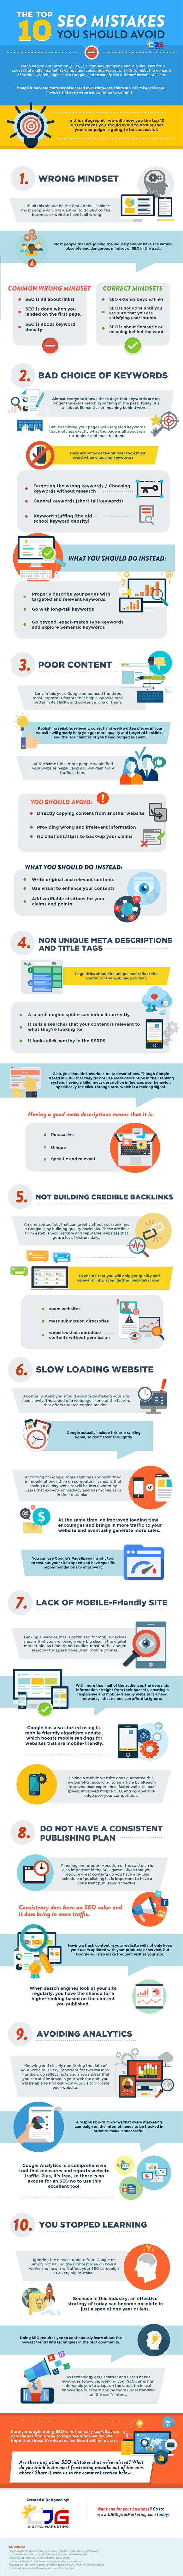 10-seo-mistakes-that-could-hold-your-website-back-on-google